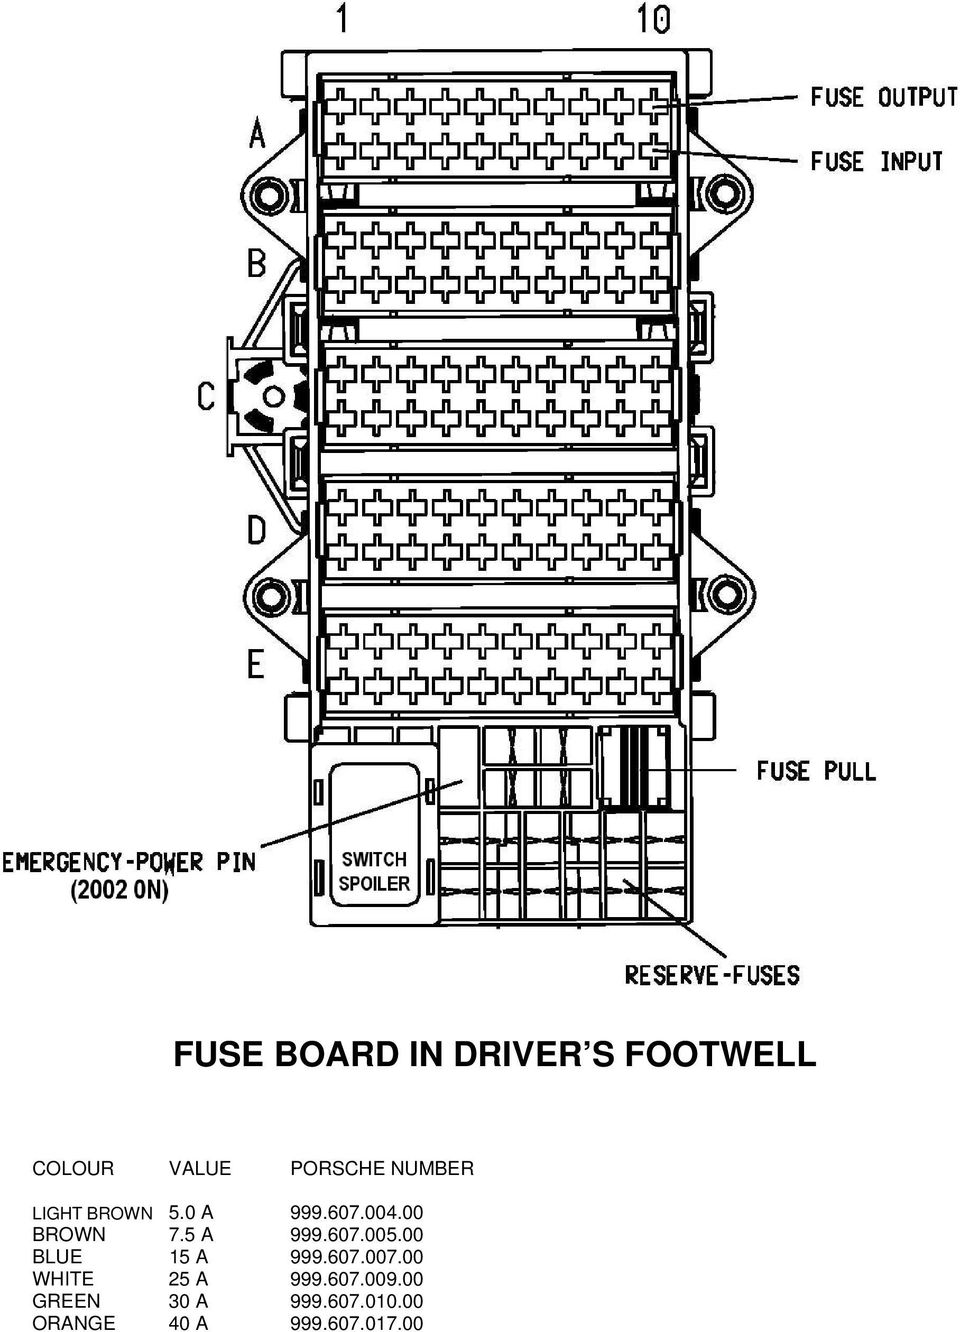 Fuse Board In Driver S Footwell Pdf Skoda Octavia 2002 Box 60700500 Blue 15 A 99960700700 White 25 999607009